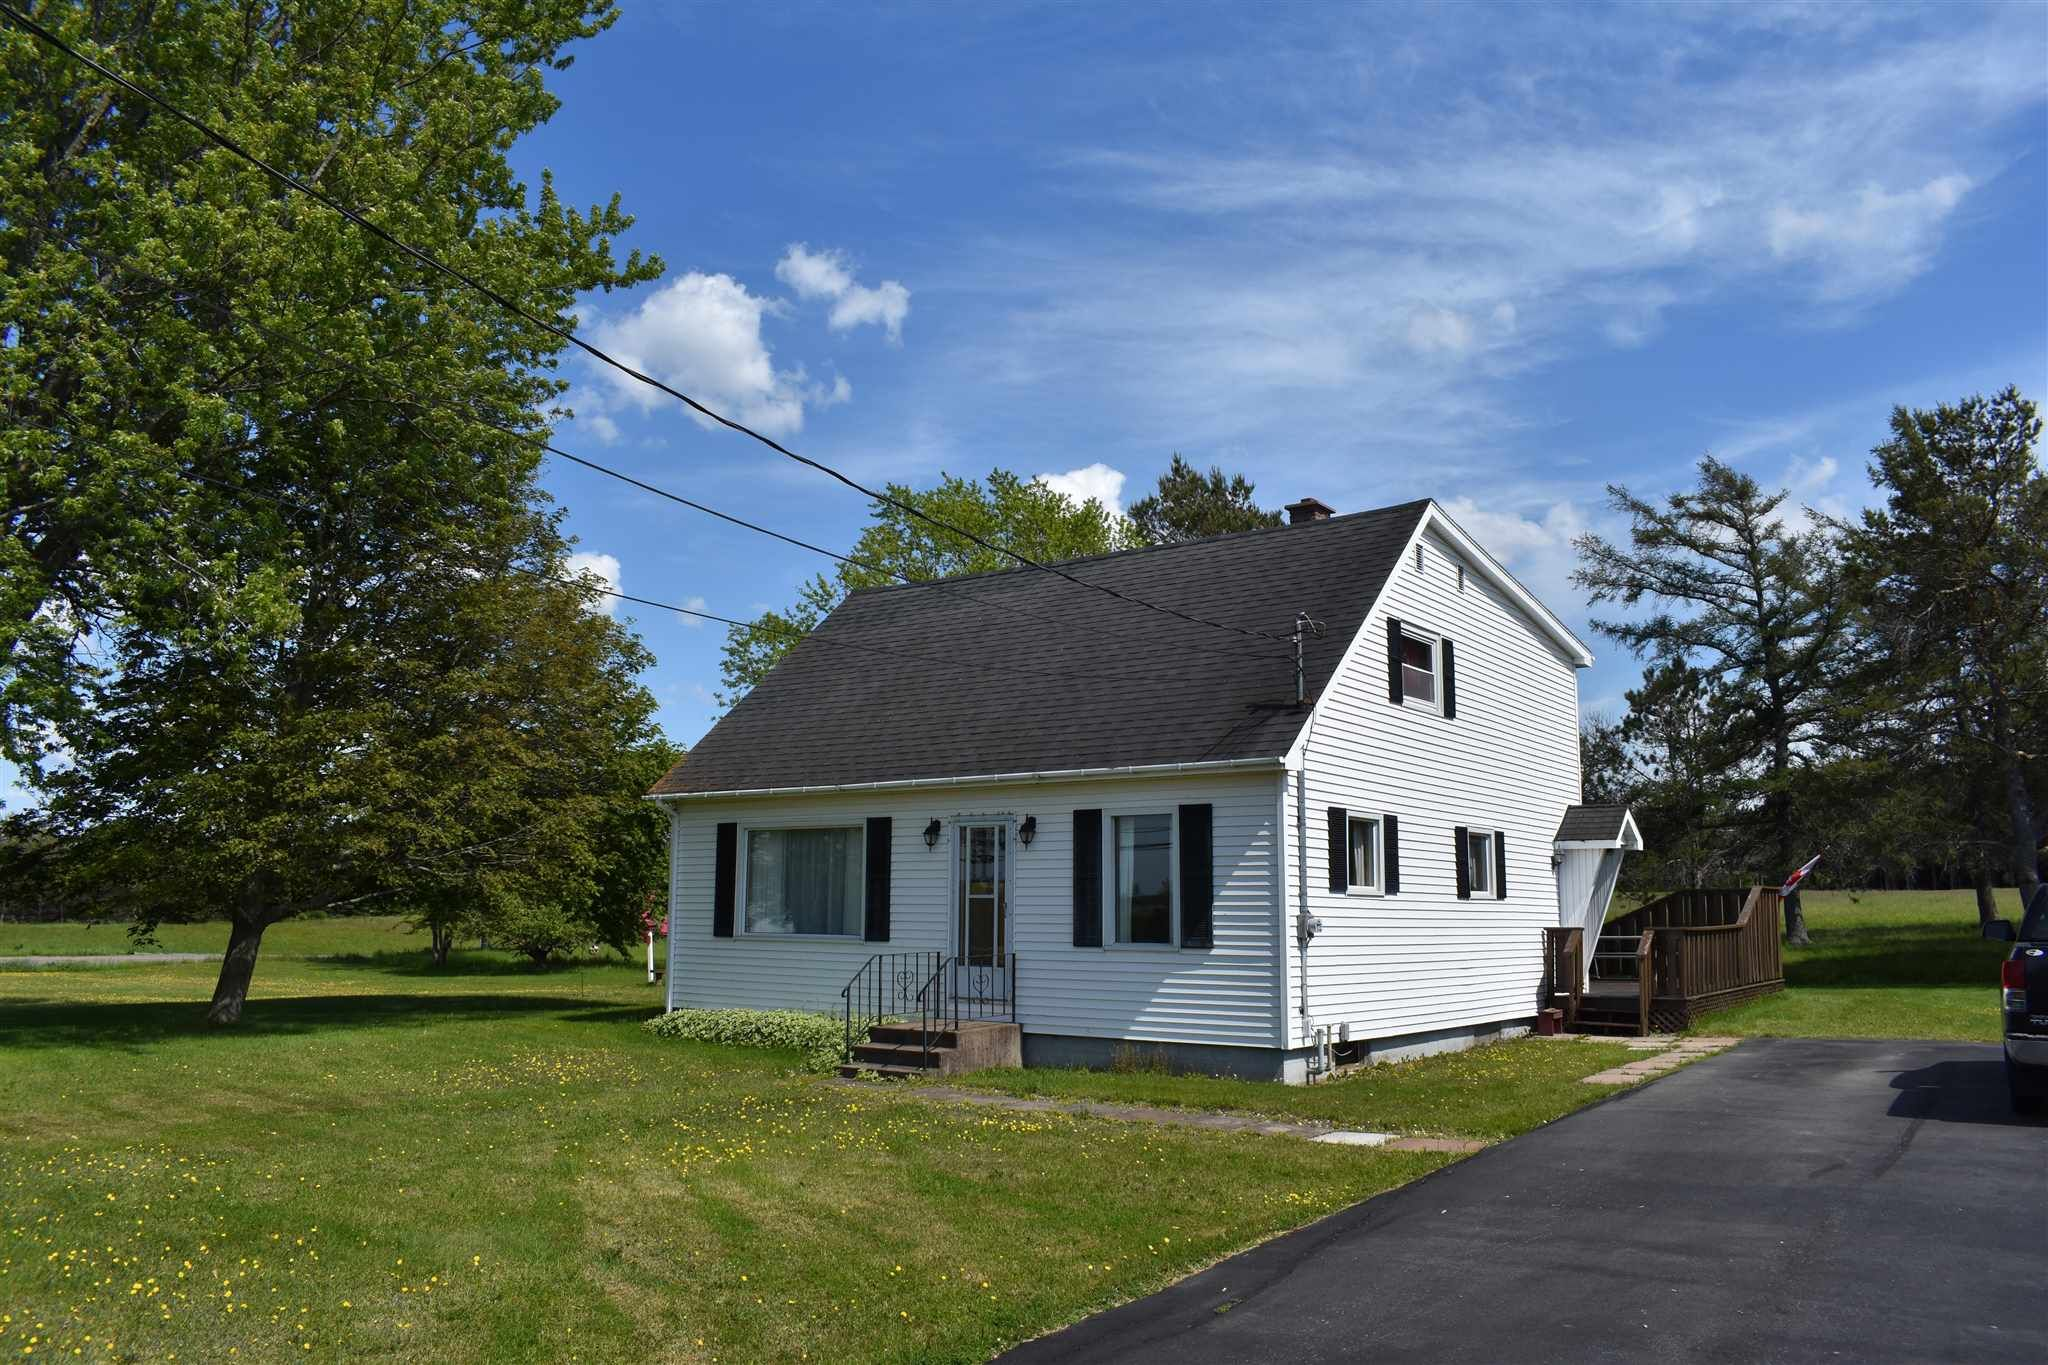 Main Photo: 1474 Southampton Road in West Amherst: 101-Amherst,Brookdale,Warren Residential for sale (Northern Region)  : MLS®# 202115040